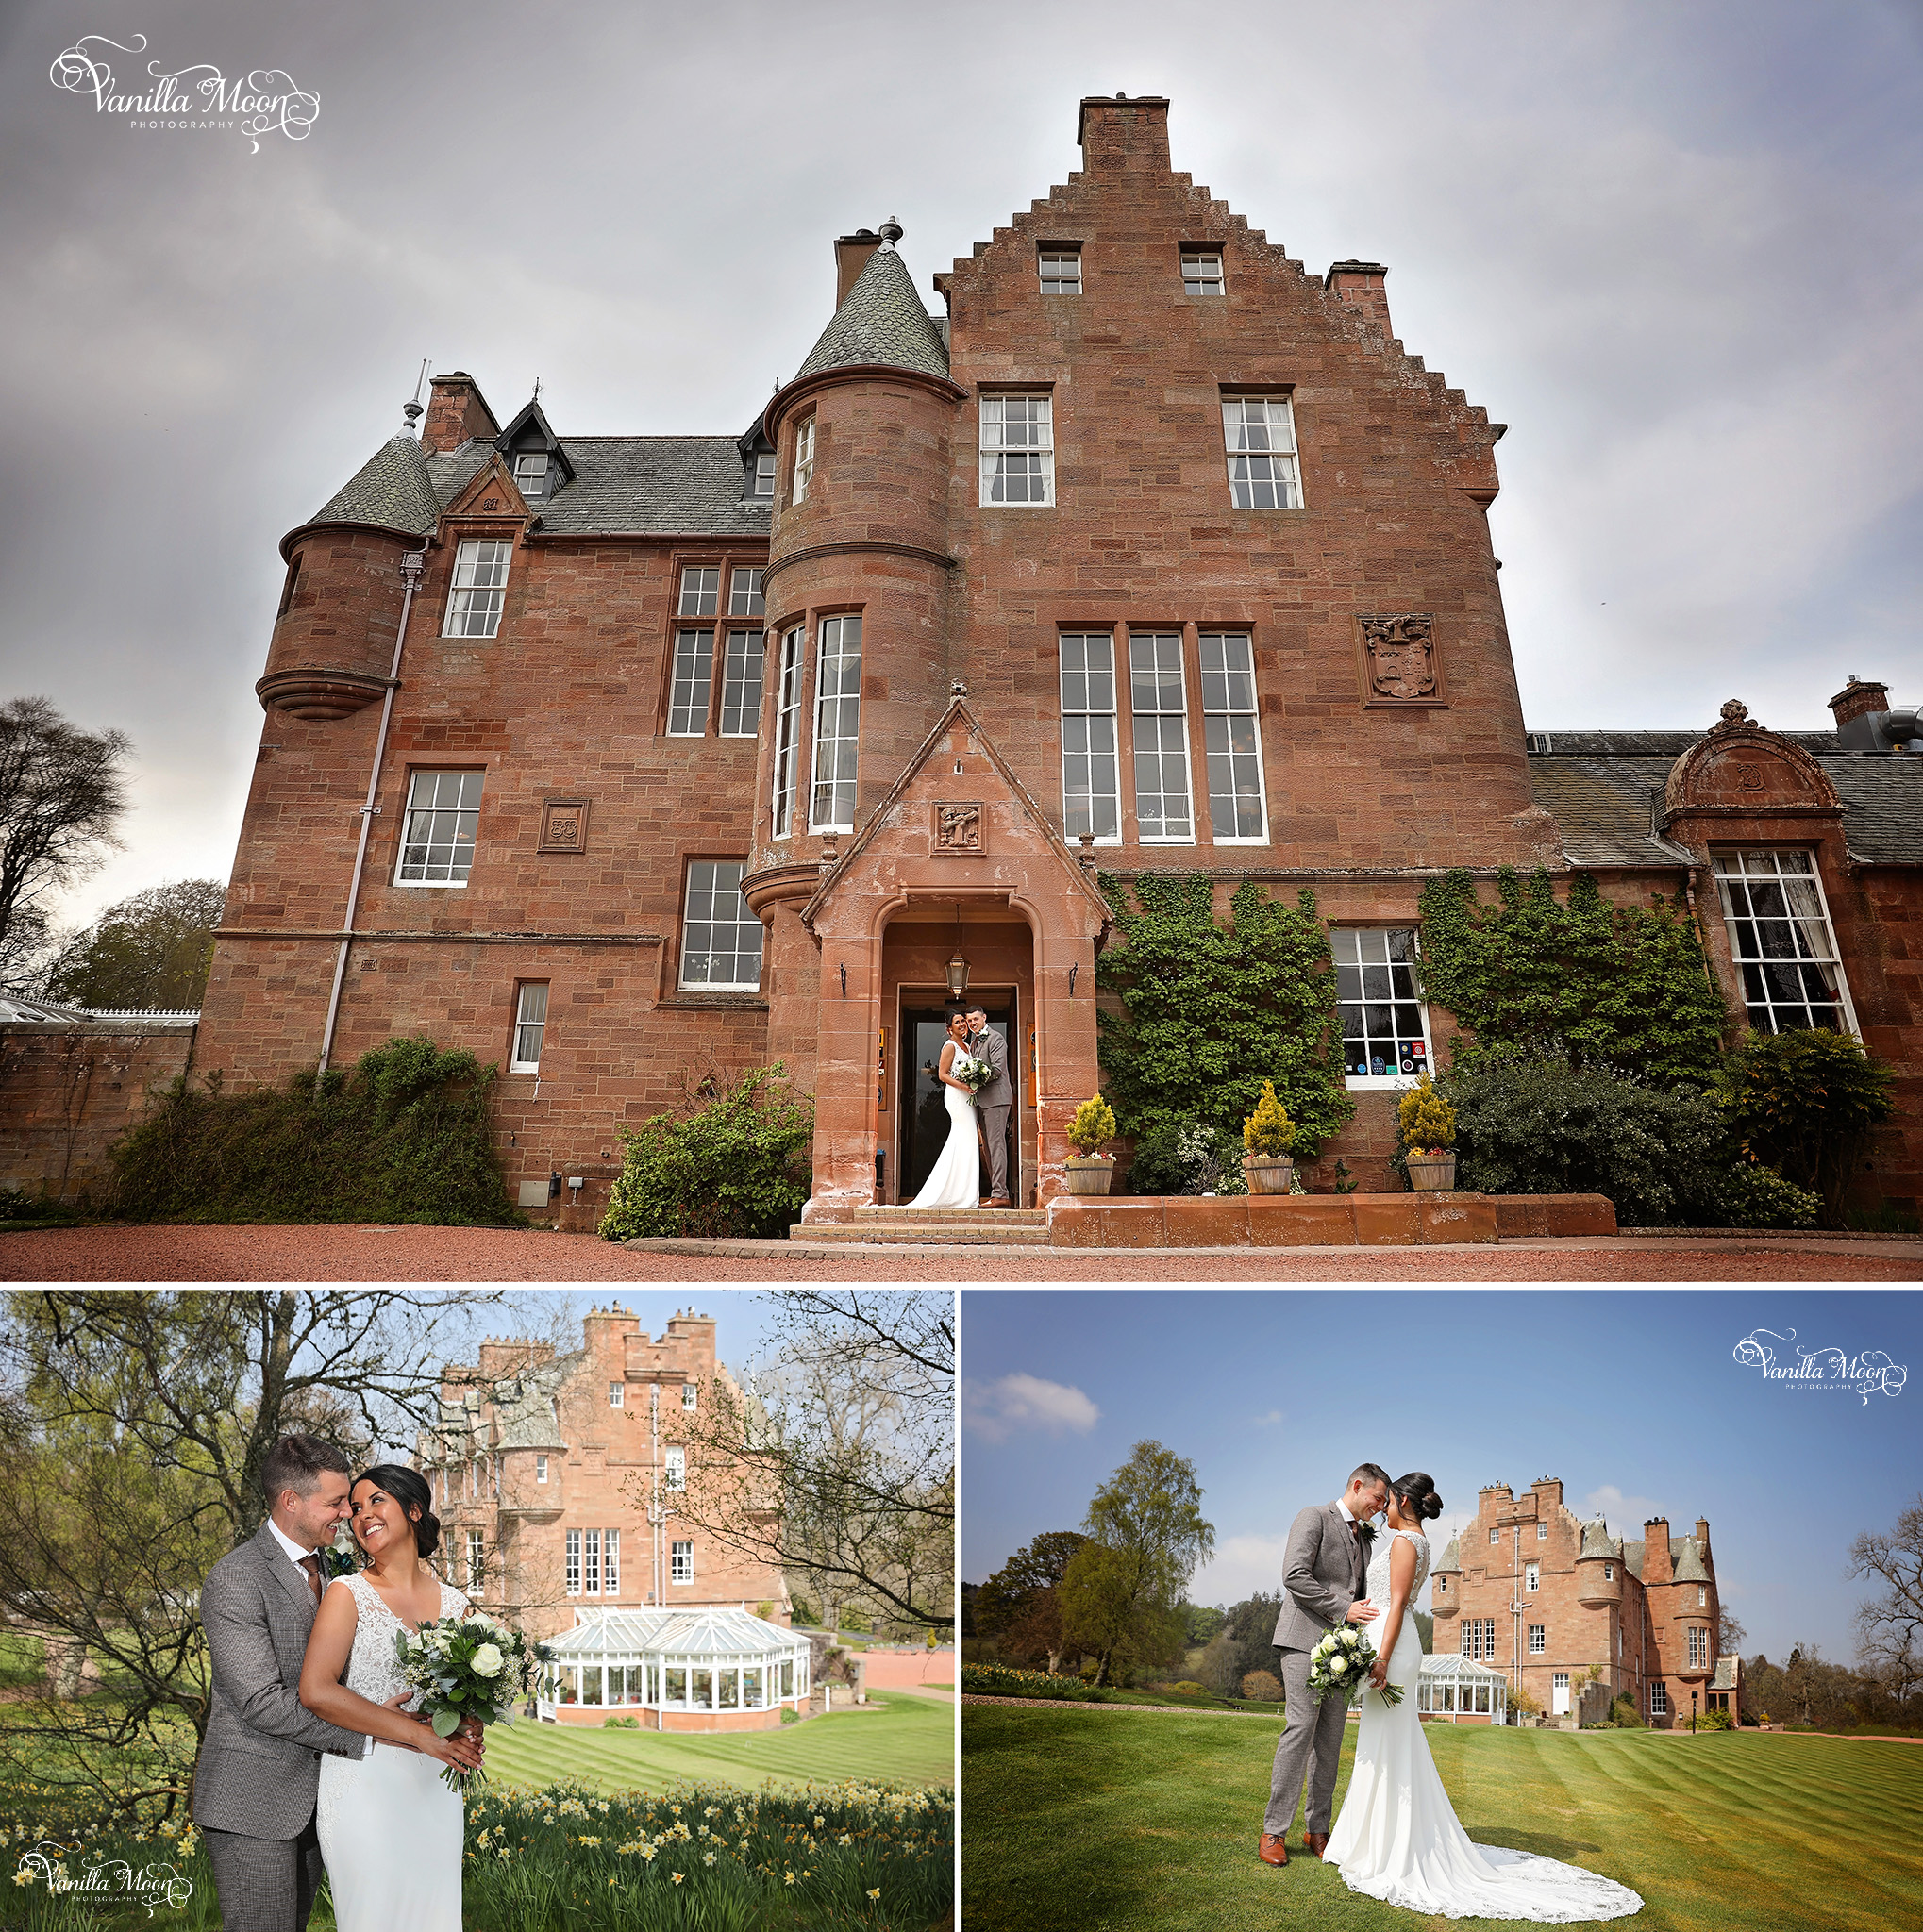 Natural and intimate wedding photography scotland